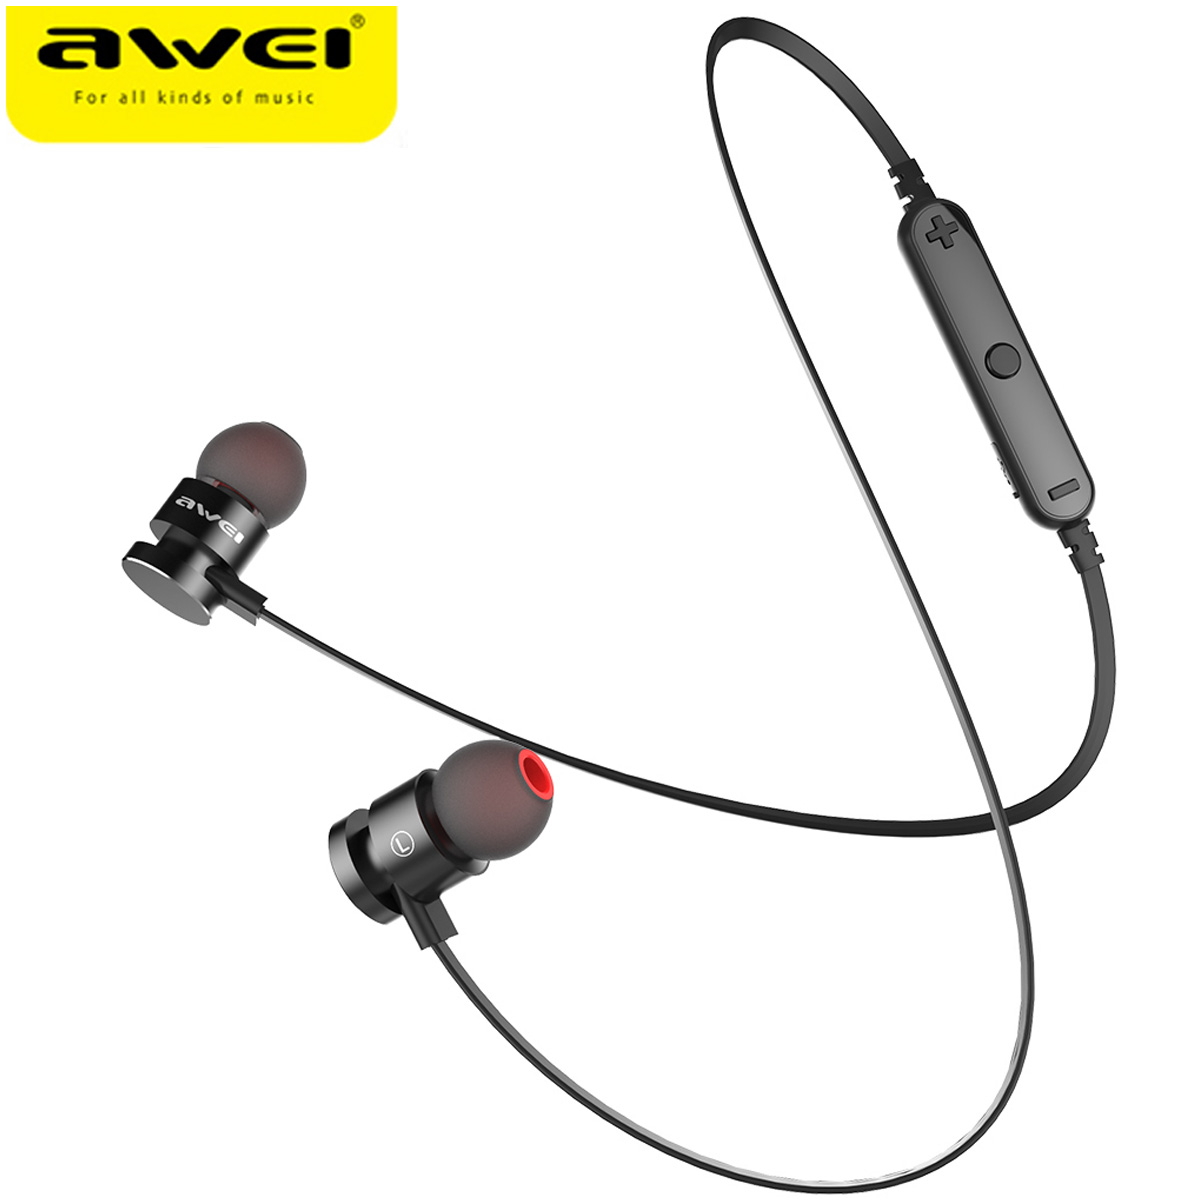 Newest AWEI T11 Wireless Headphone Bluetooth Earphone Headphone For Phone Neckband sport earphone Auriculare CSR Bluetooth V4.2